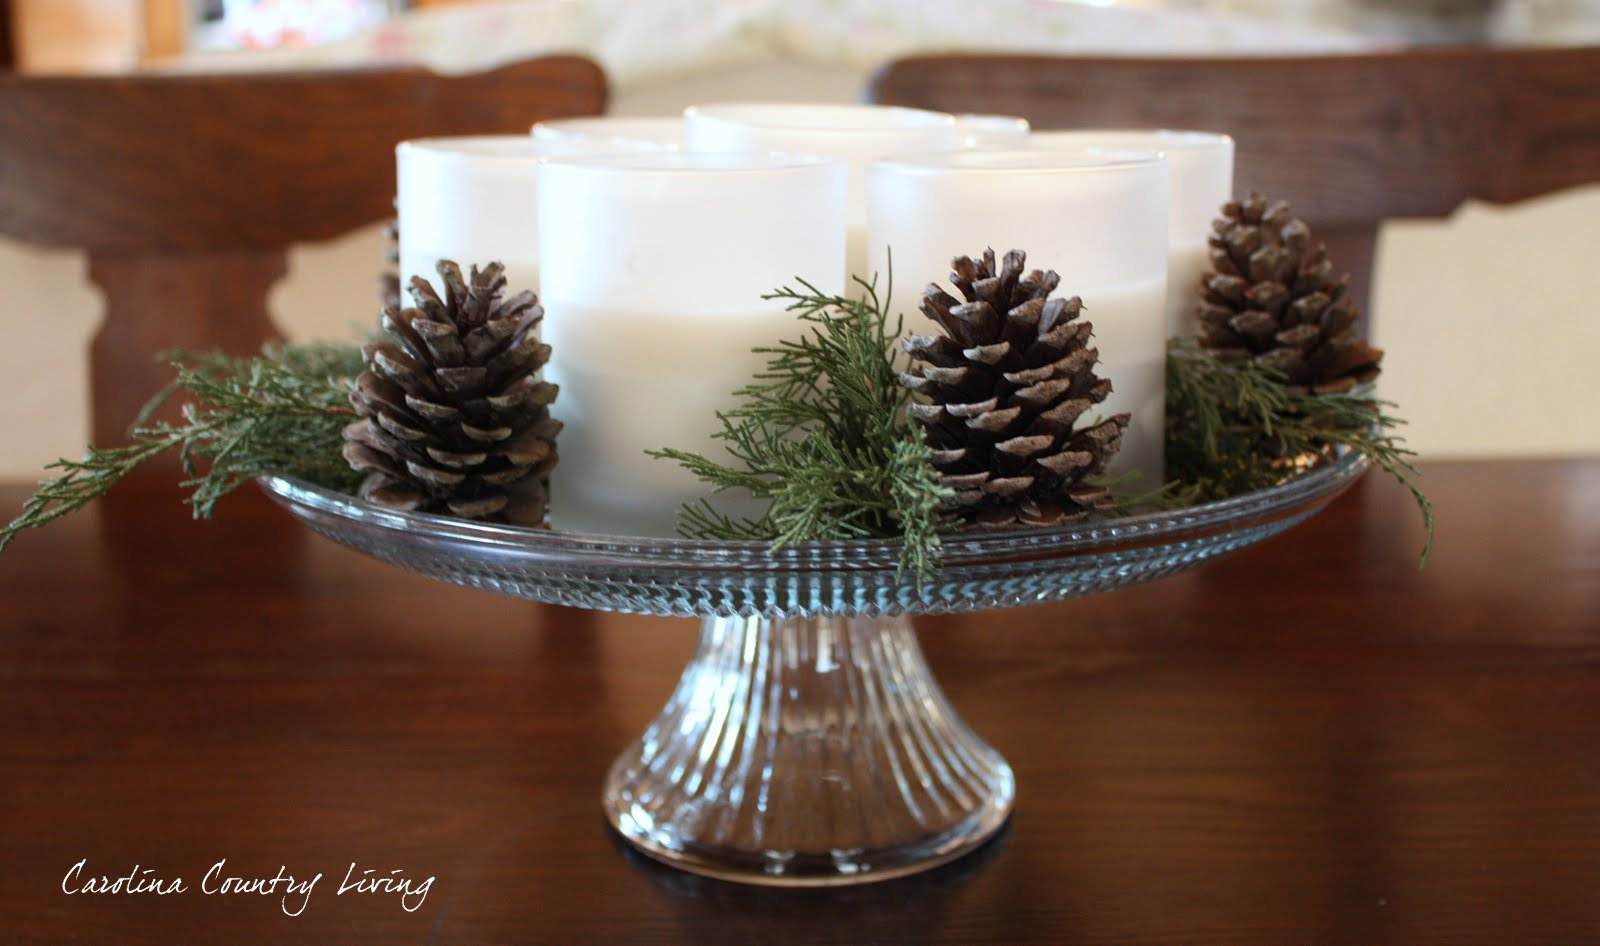 Carolina Country Living Simple Winter Centerpiece : IMG5053 from carolinacountryliving.blogspot.com size 1600 x 946 jpeg 118kB